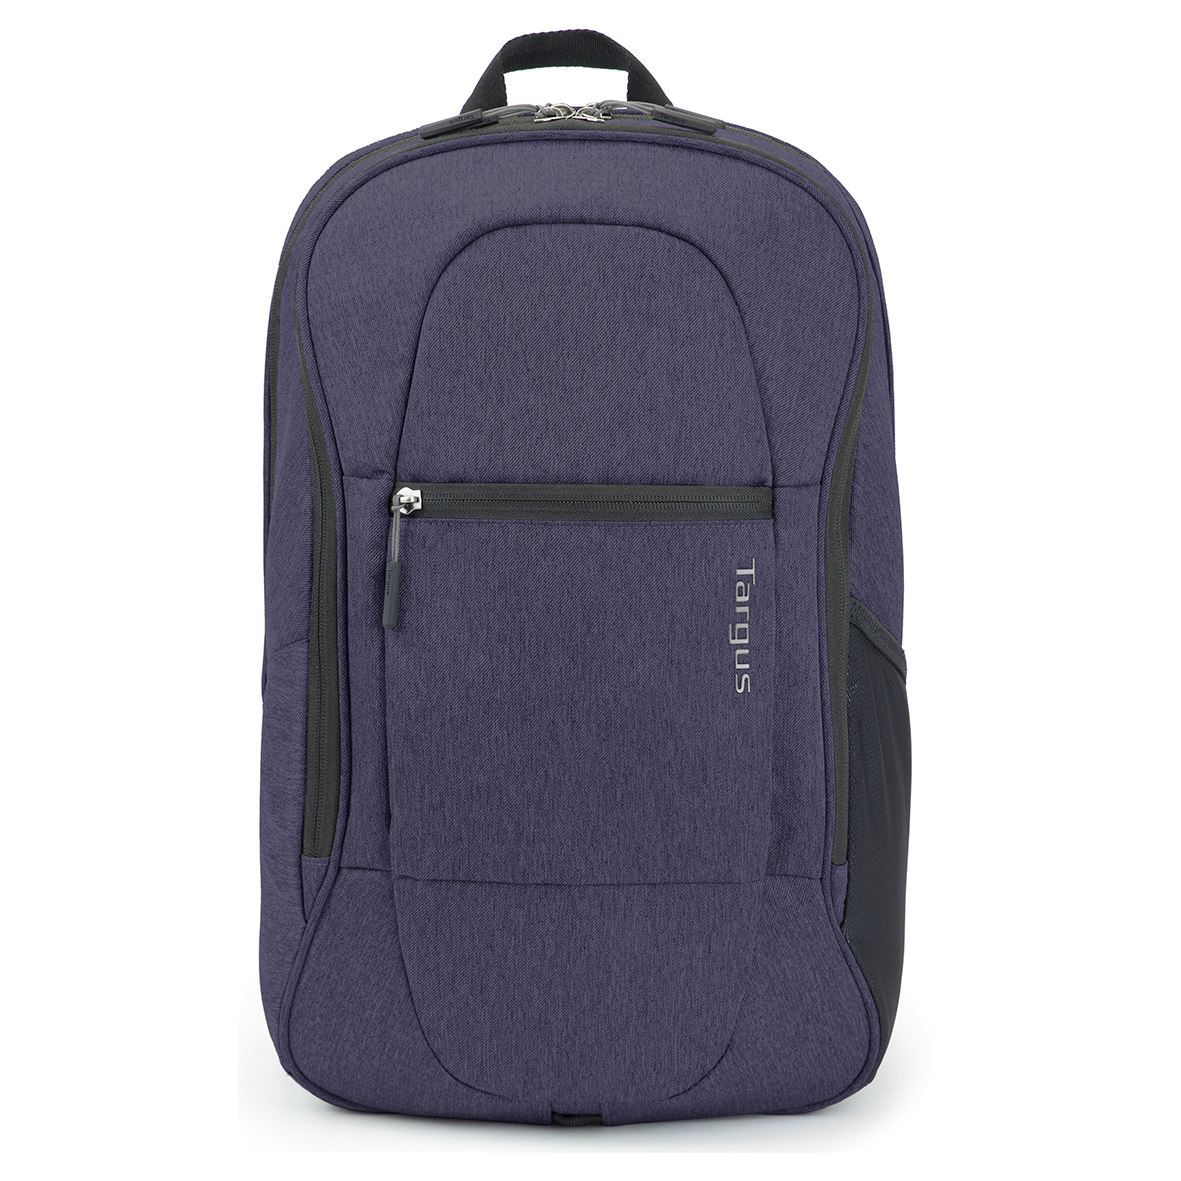 Urban Commuter 15 6 Quot Laptop Backpack Blue